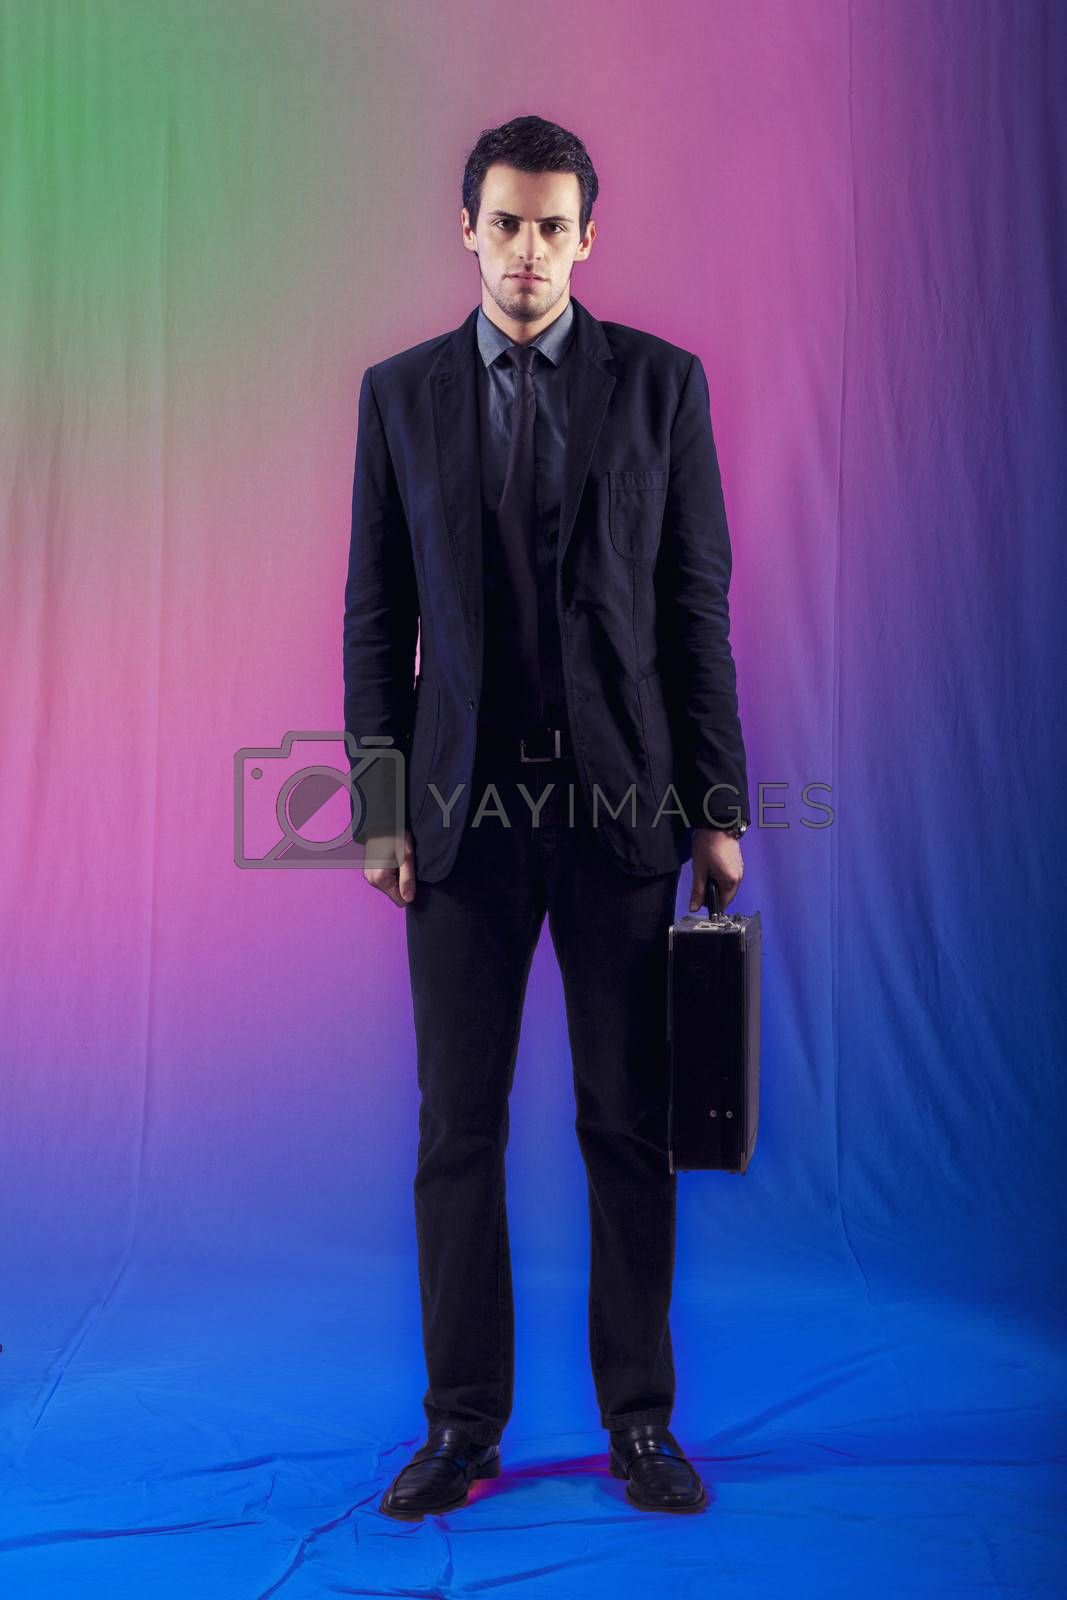 View of a young business man standing against a colorful  background.